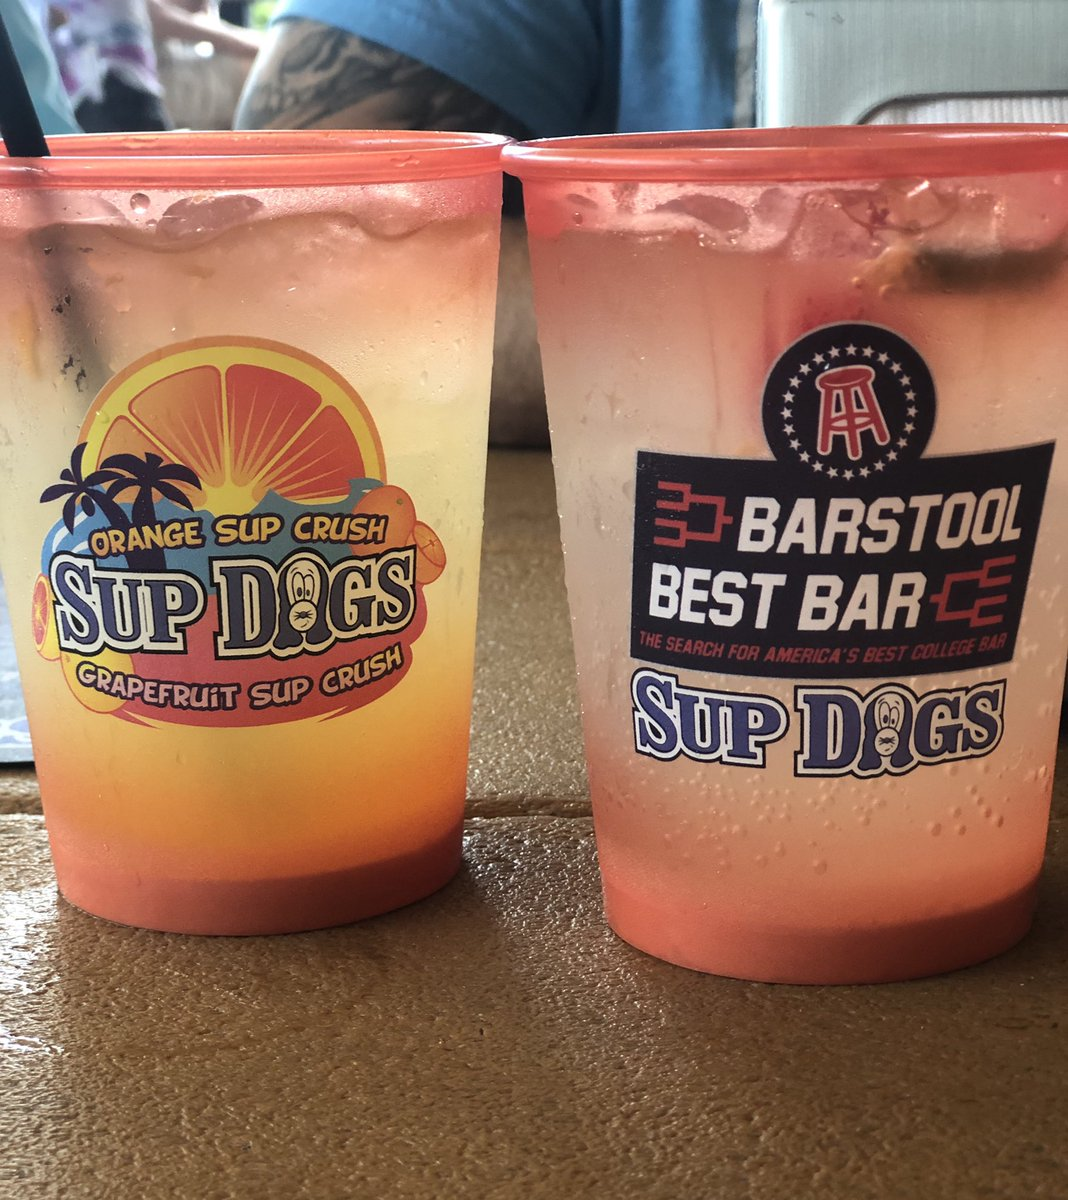 Words can not describe my excitement, Happiness, and yes I ordered two at one time @SupDogsECU My #1 on list since shutdown has been completed, and is better than I ever imagined #BarstoolBestBar #SupCrushin #SundayFunday #LivingMyBestLife https://t.co/wWCSqU3lop